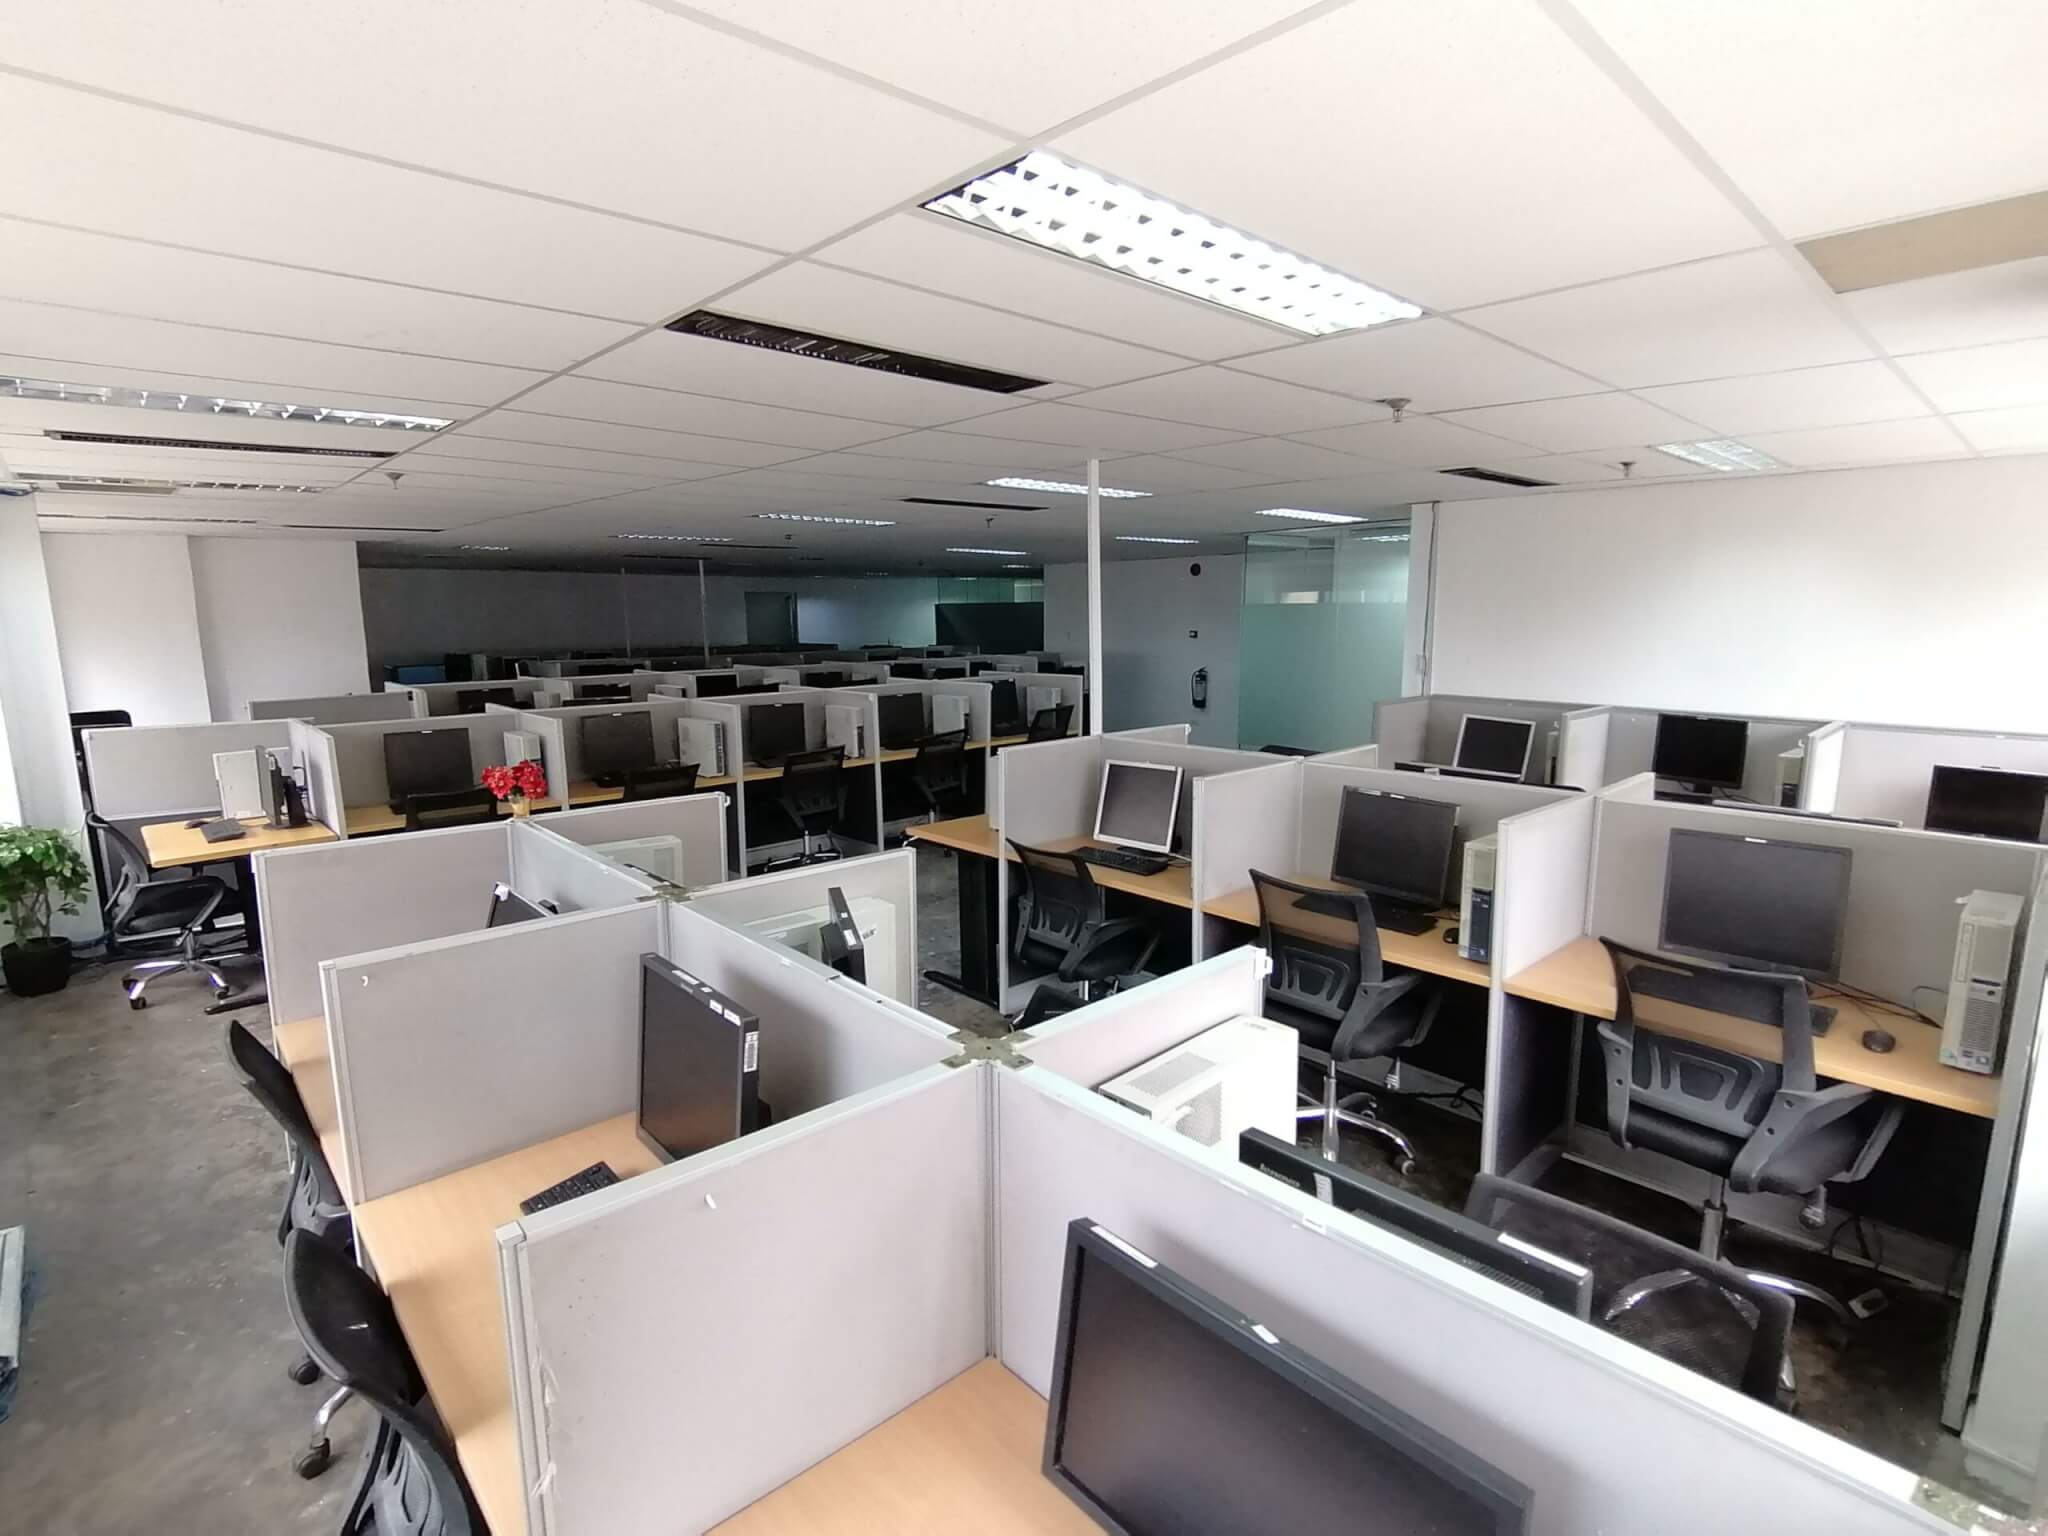 BPOs led office demand in 2020